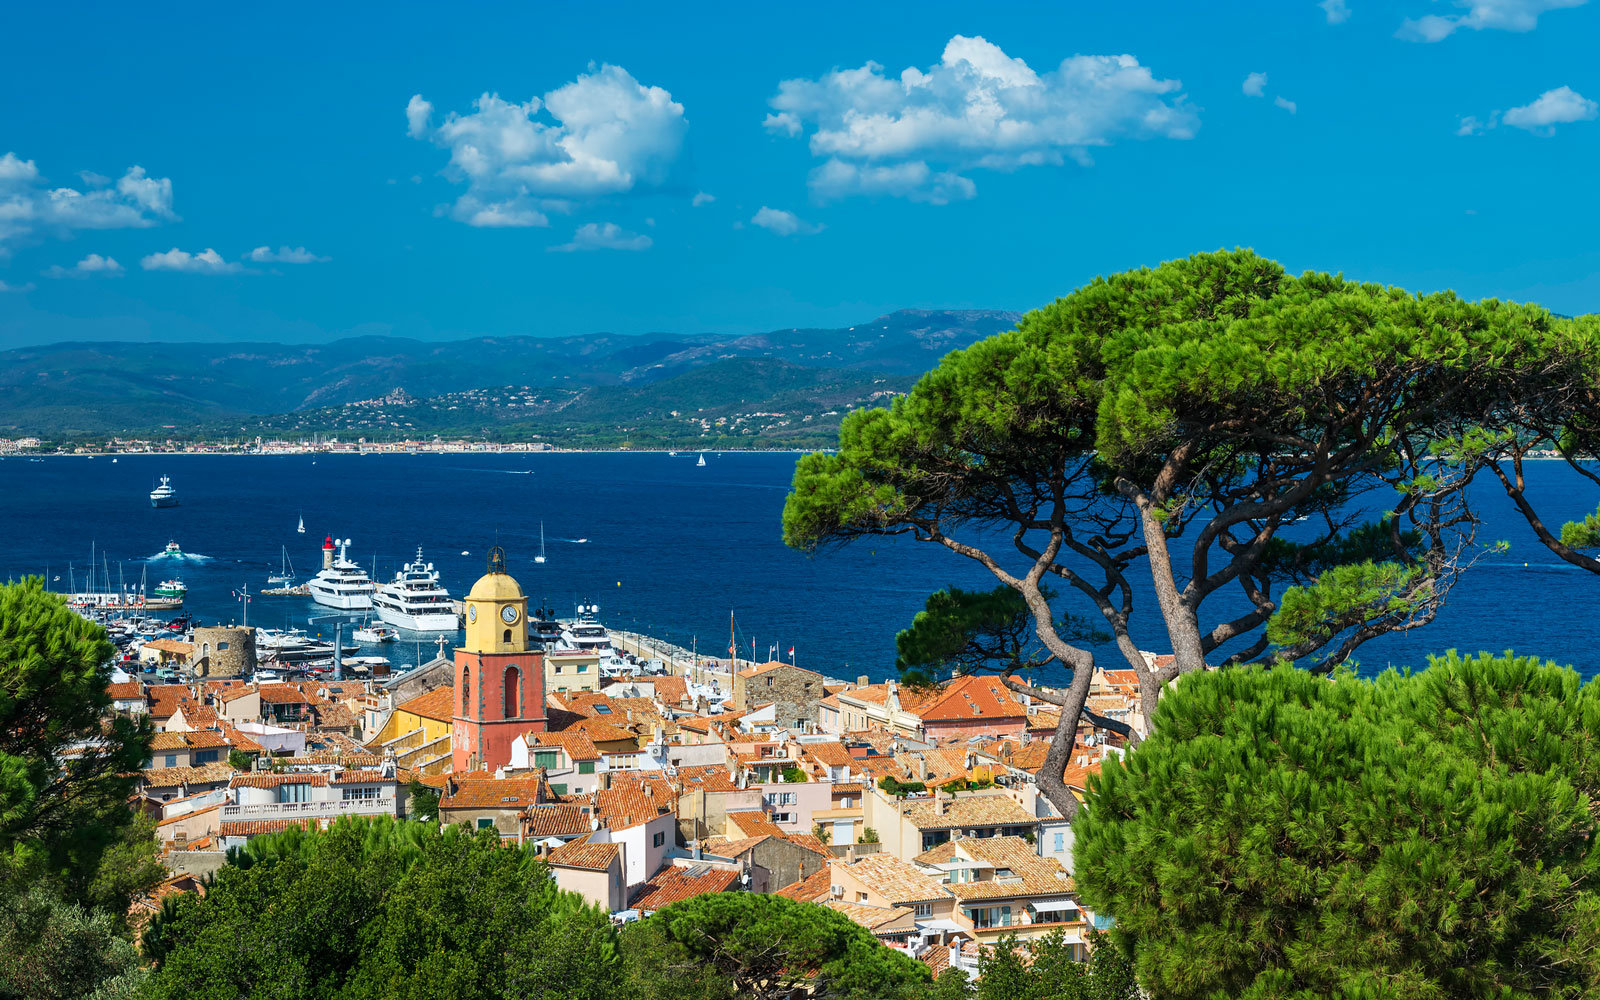 Foreign private jets can no longer land at St. Tropez's airport